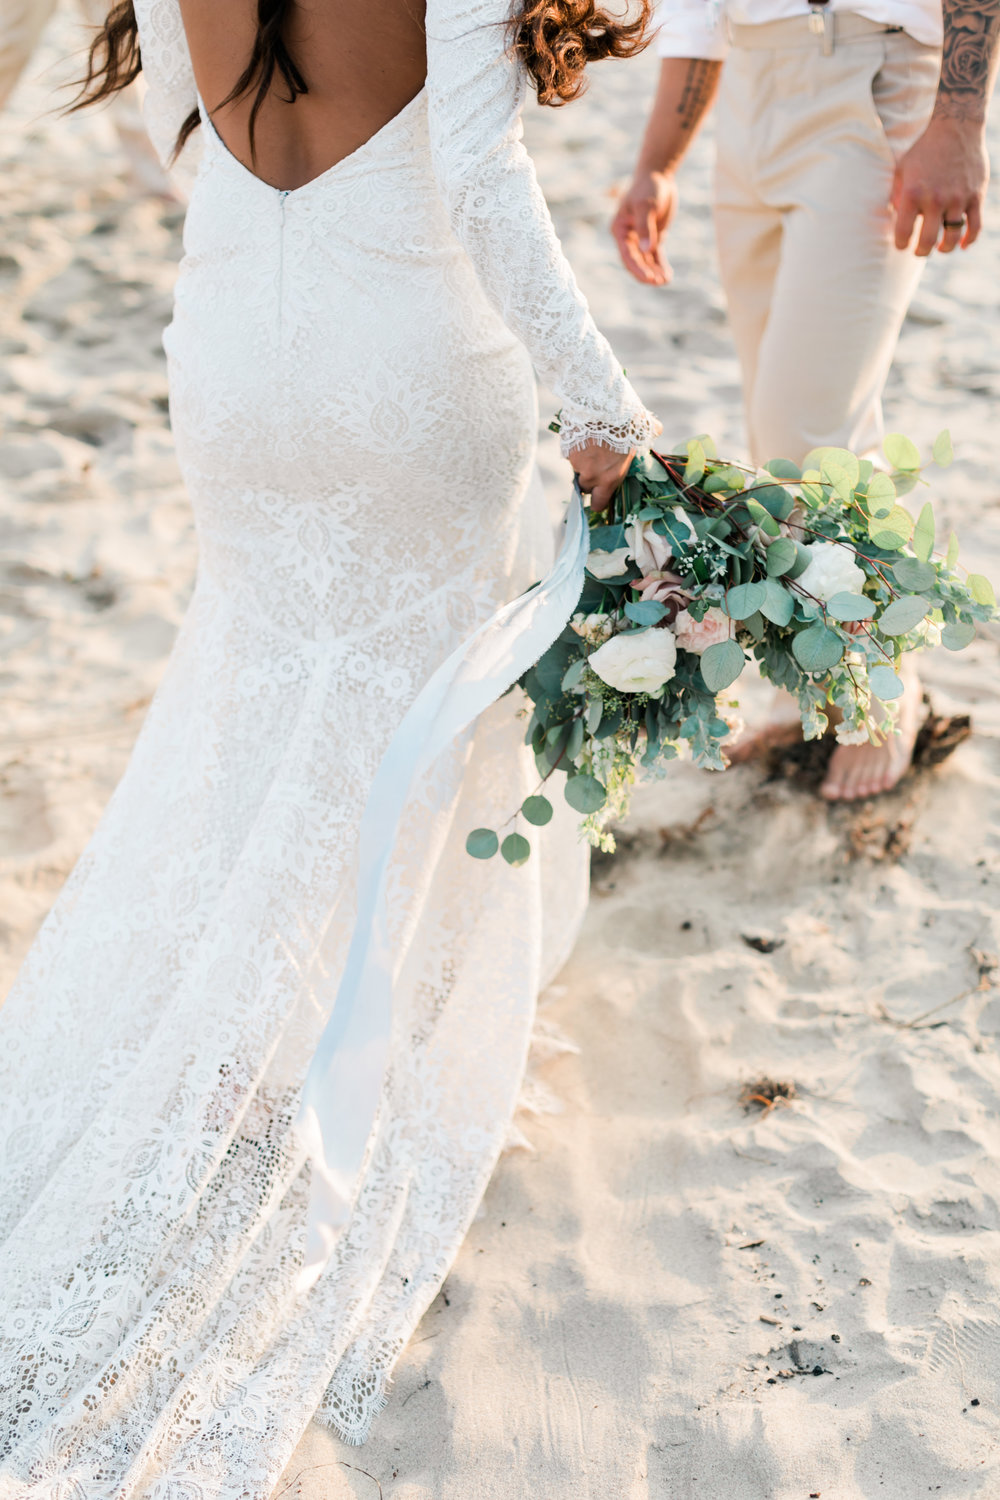 Destination Beach Wedding_Valorie Darling Photography-2472.jpg